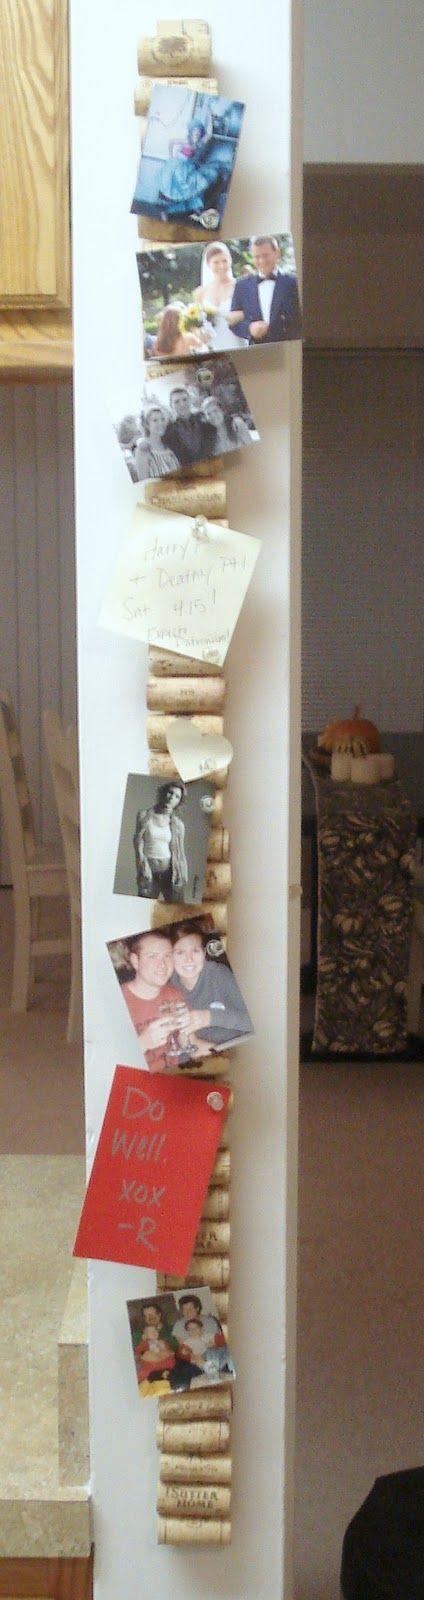 EASY DIY wine cork board. So cute!